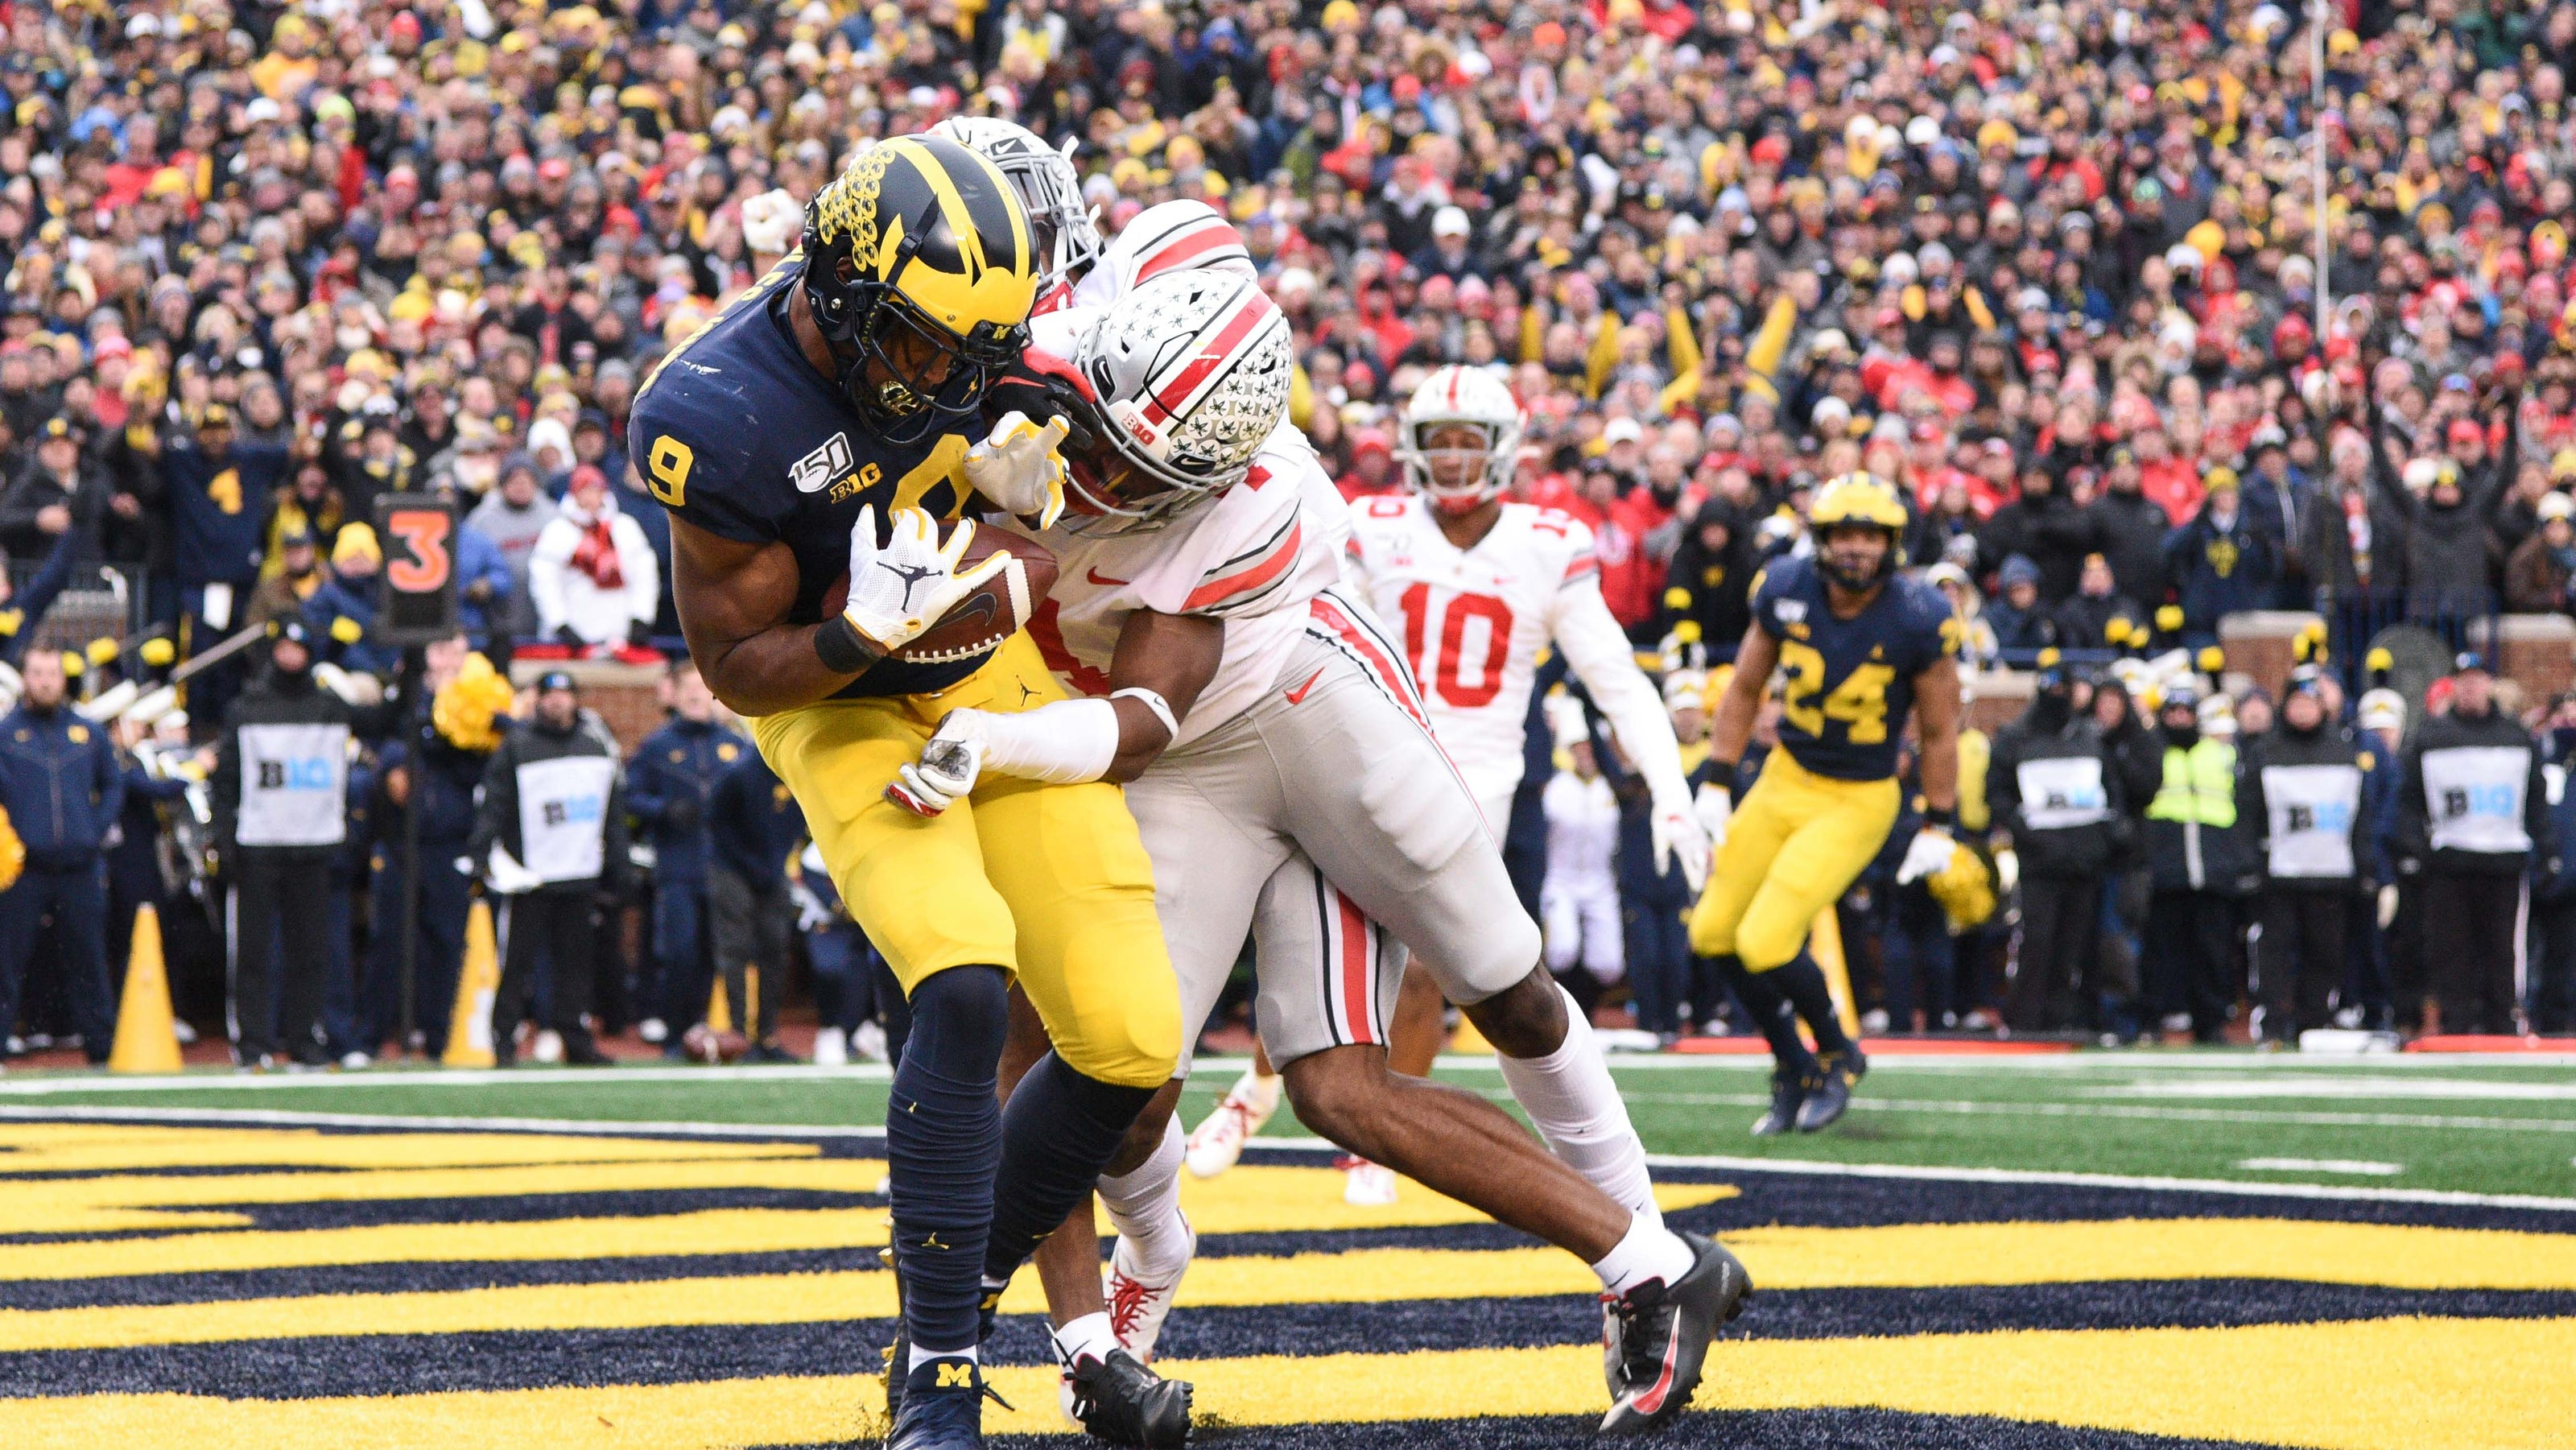 Ohio State-Michigan football game rescheduled for October